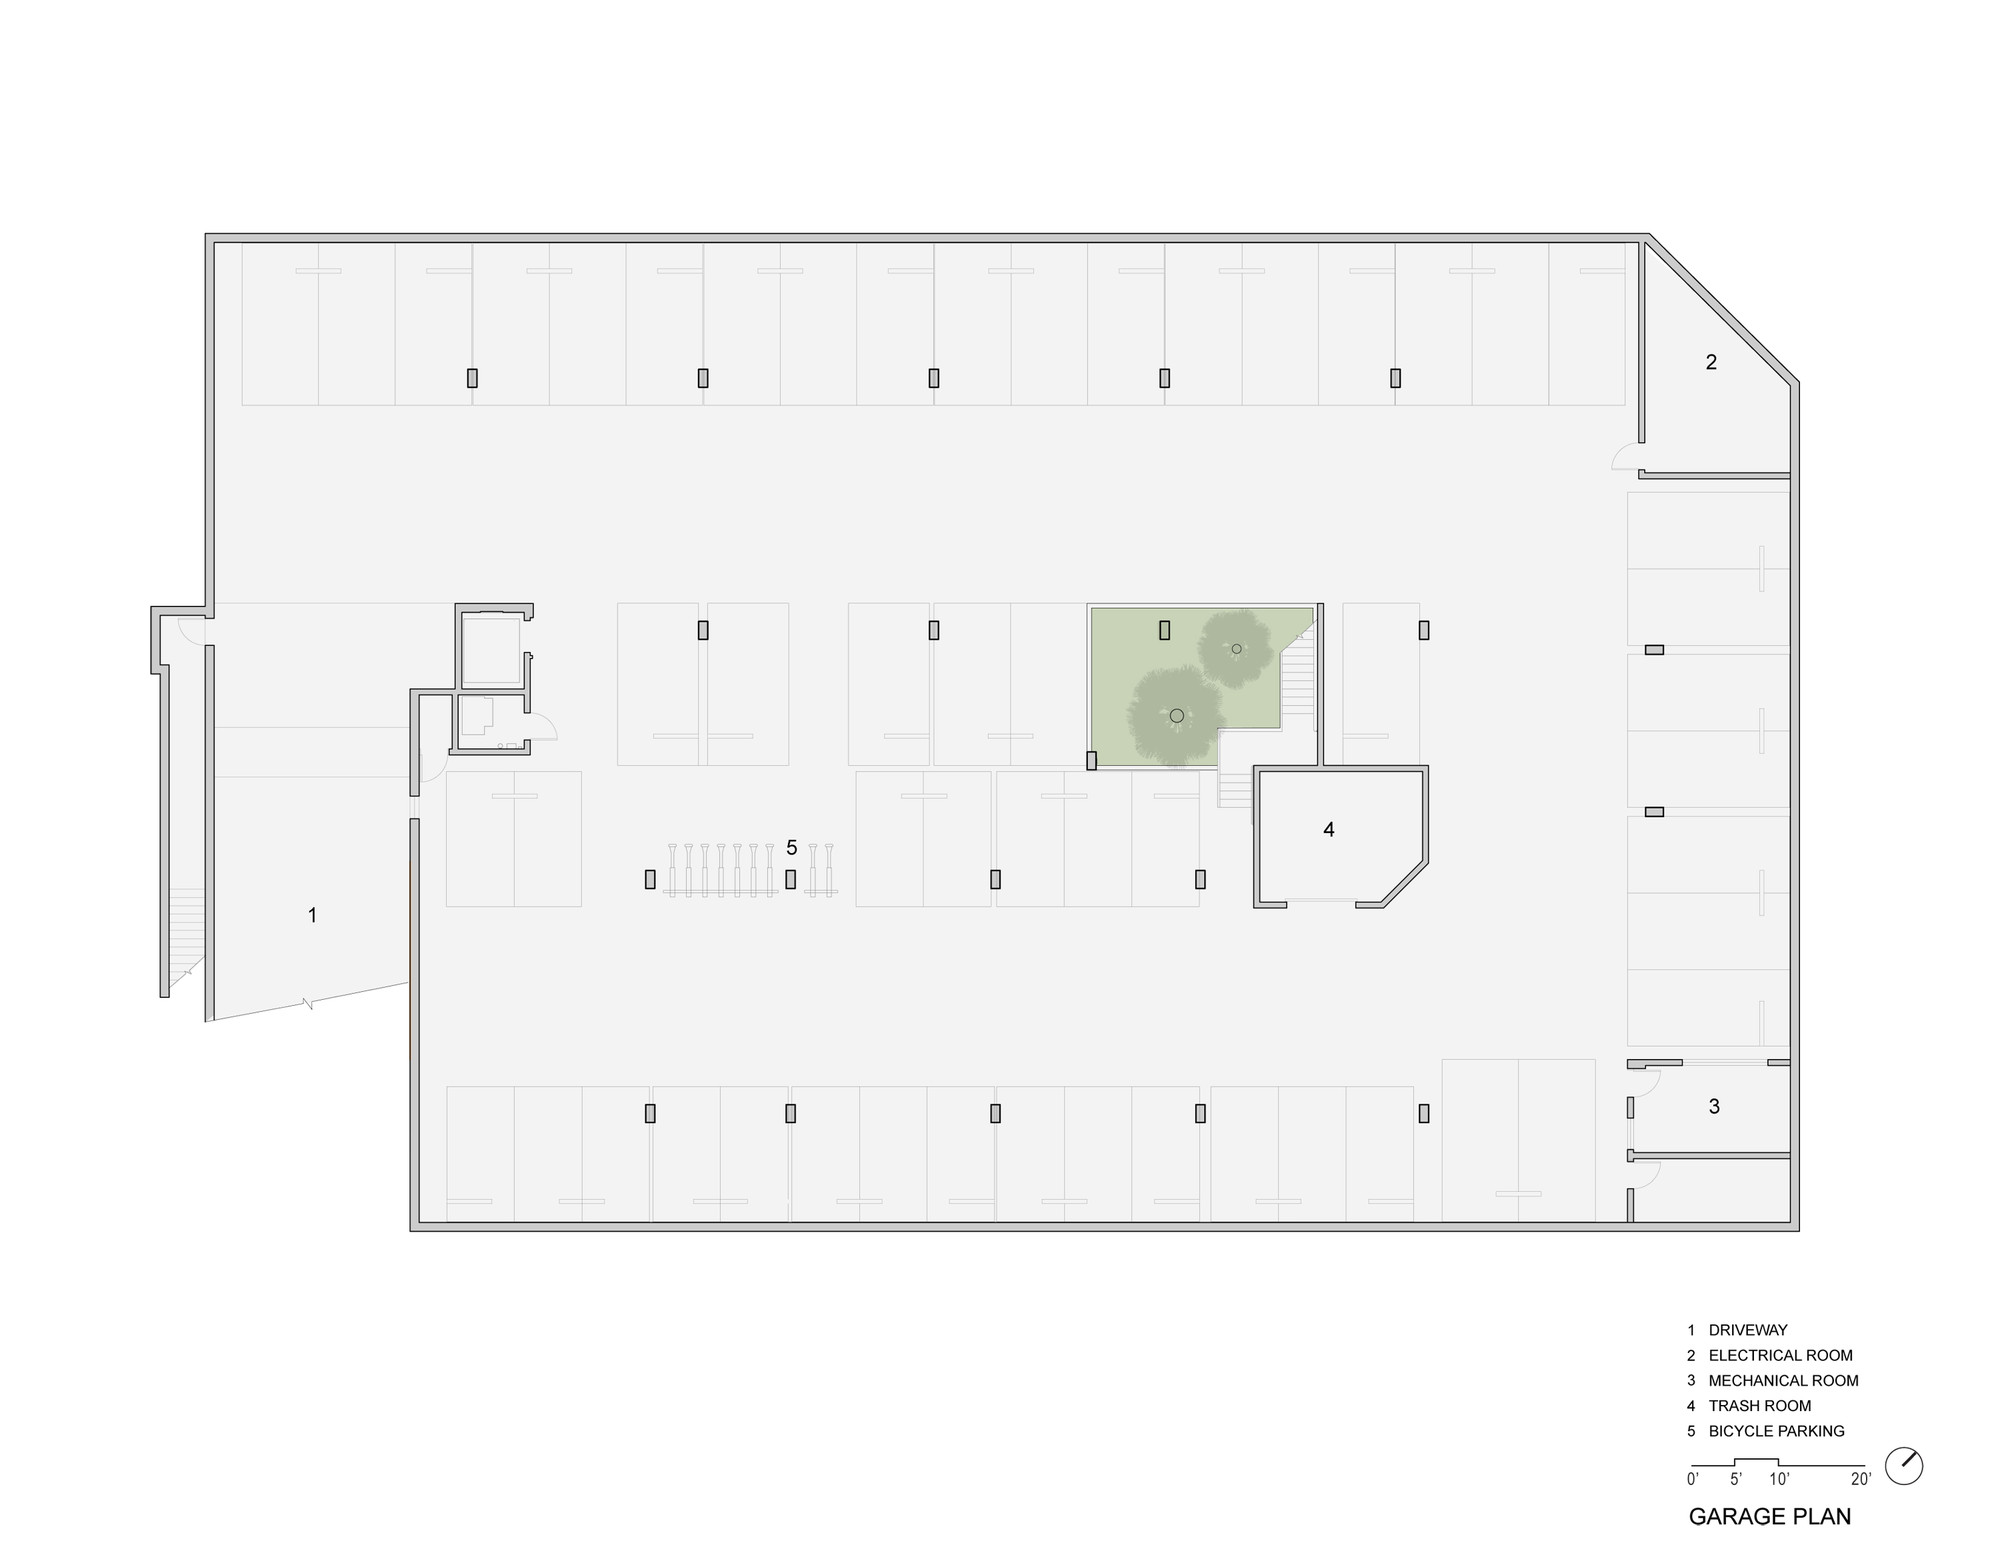 garage floor plan gallery of pico place scarpa architects 18 11850